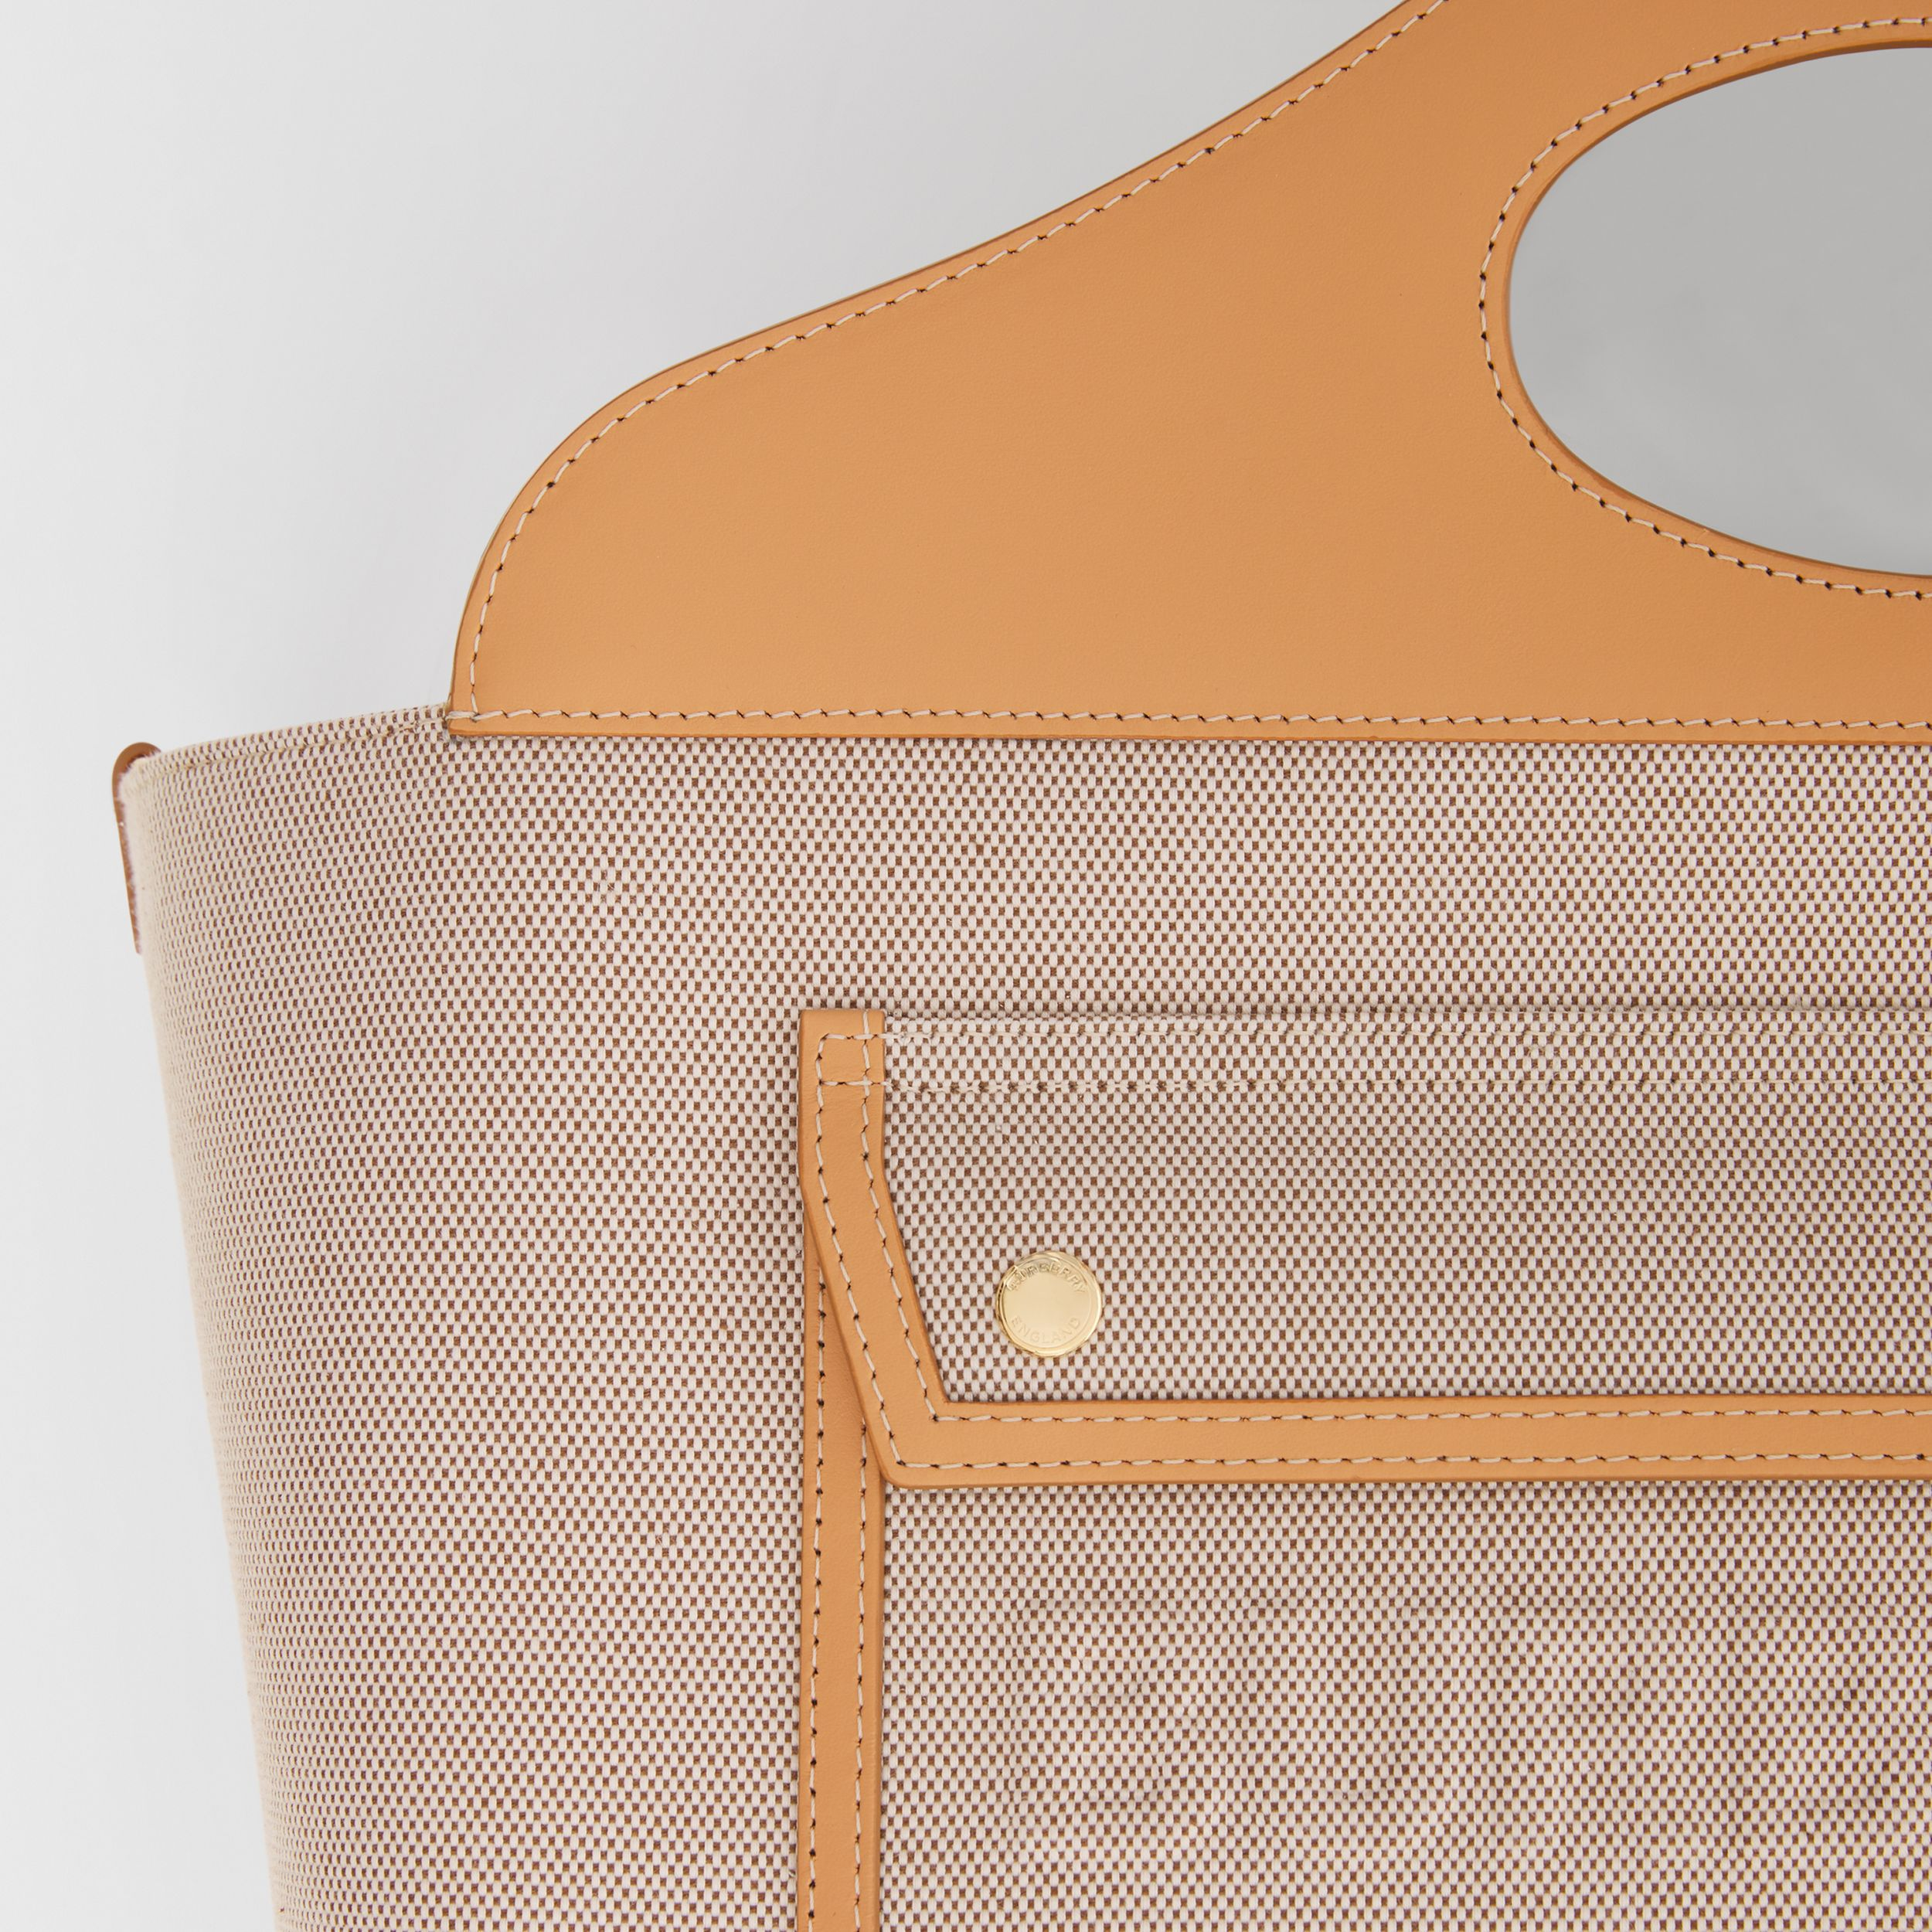 Medium Cotton Canvas and Leather Soft Pocket Tote in Fawn/warm Sand - Women | Burberry United Kingdom - 2